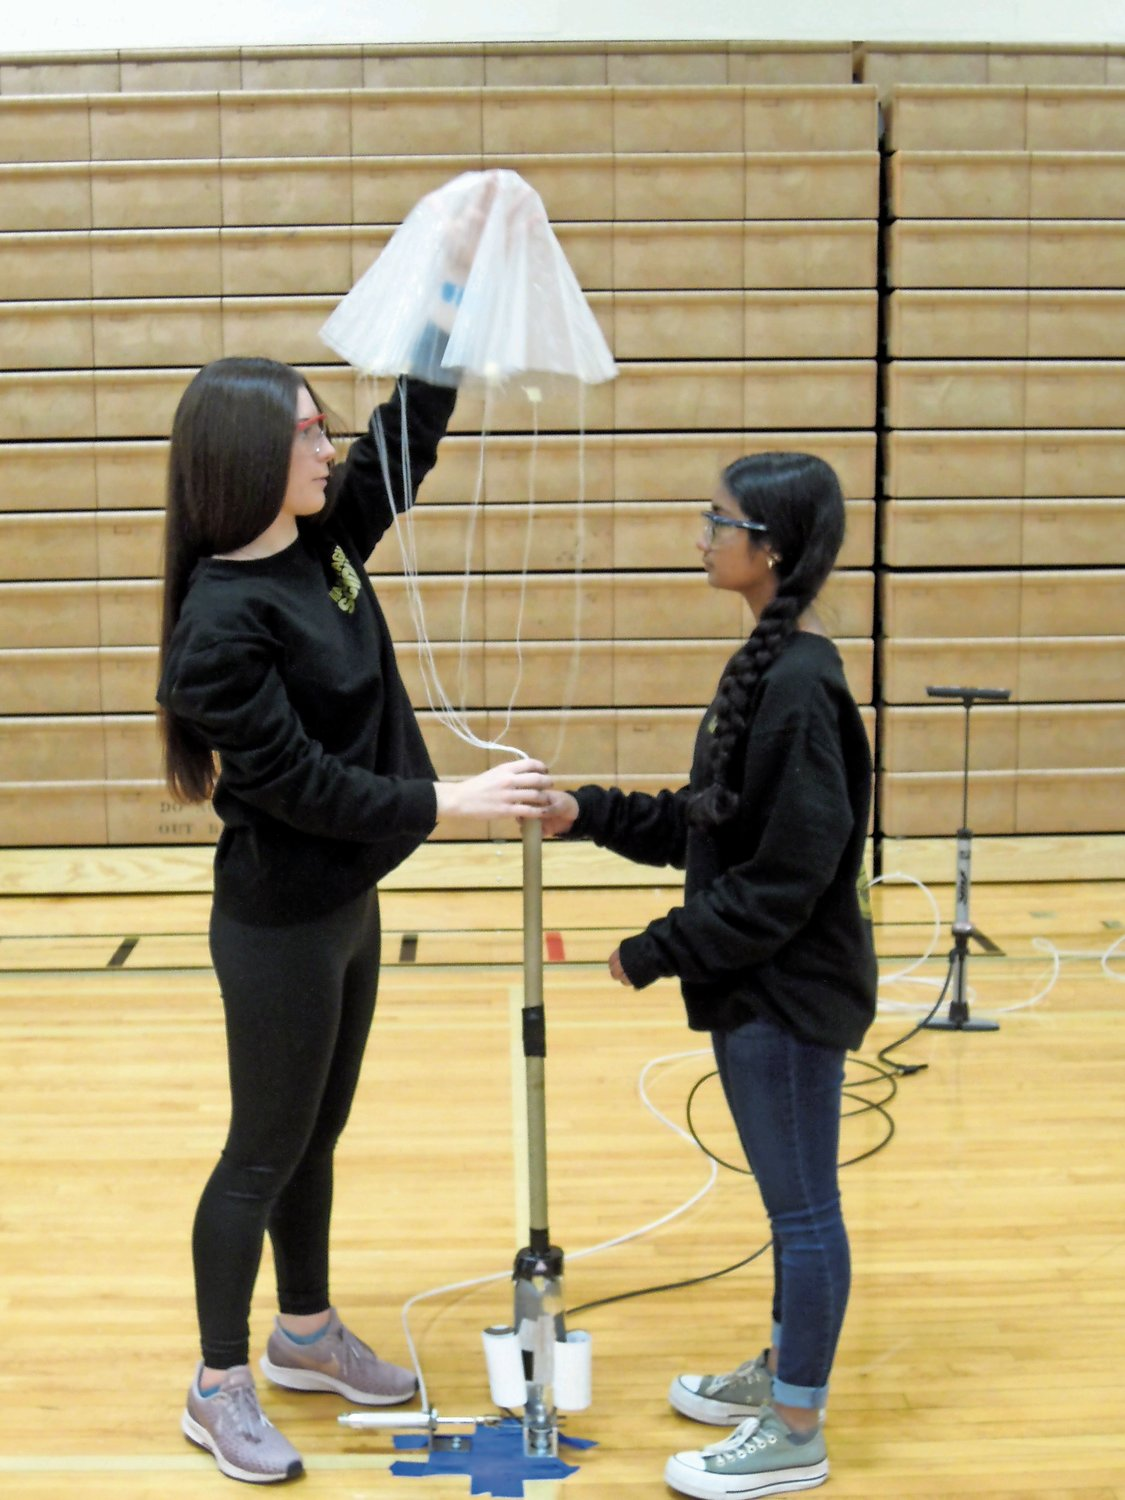 Wantagh's ping pong parachute team of Margaret Gates, far left, Abigail Colaeo and Athena Yao (not shown) prepared their bottle rocket for launch.